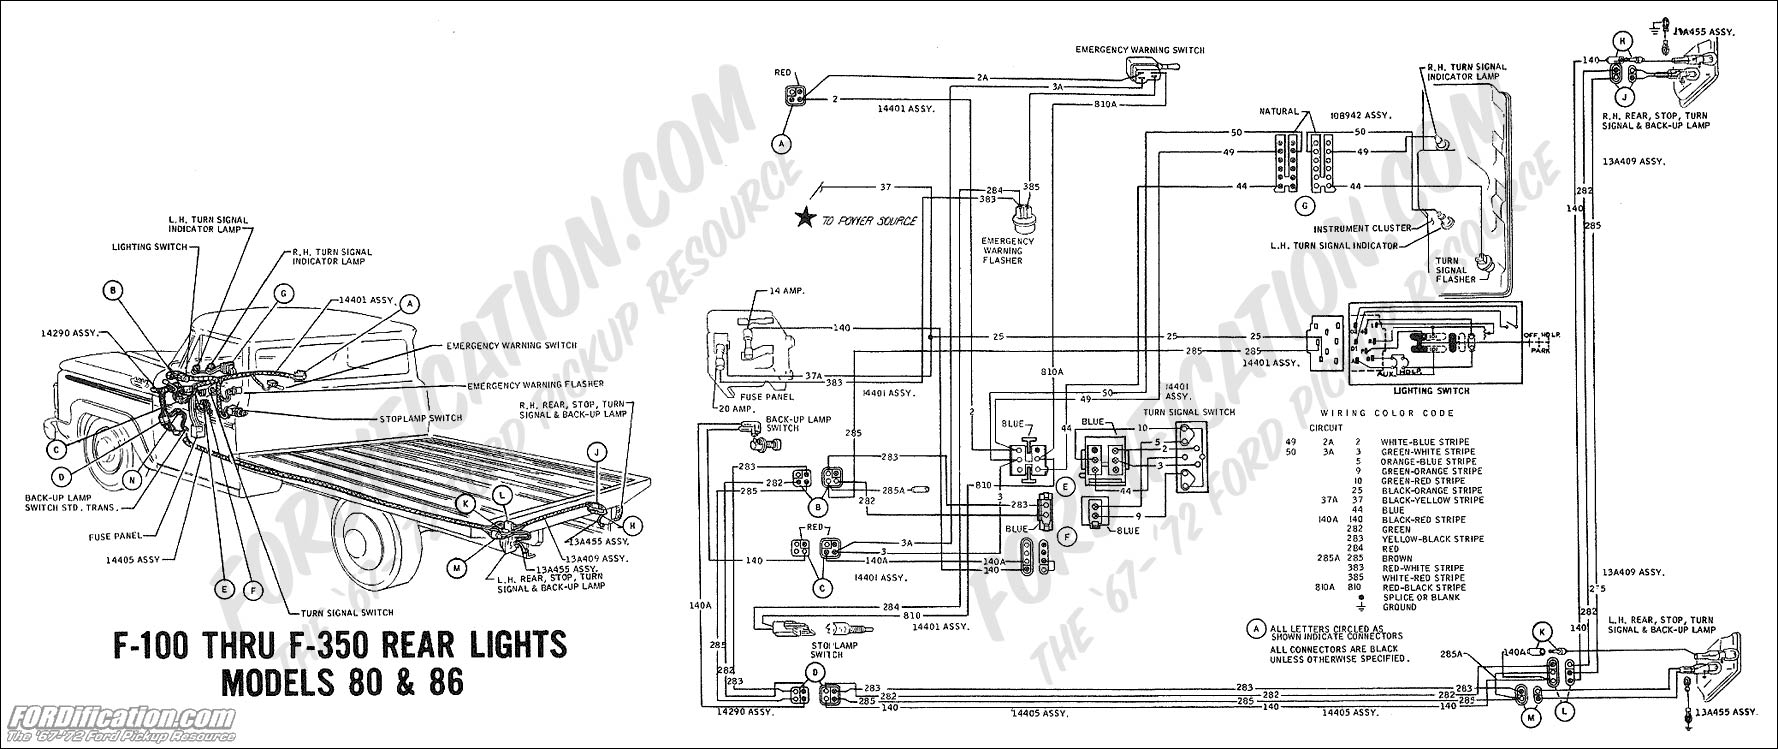 1969 ford f 350 wiring diagram lamp 5 14 jaun bergbahnen de \u2022 2009 Nissan Rogue Stereo Wiring Diagram ford truck technical drawings and schematics section h wiring rh fordification com 2011 ford f 350 wiring diagram 2003 ford f 350 wiring diagram